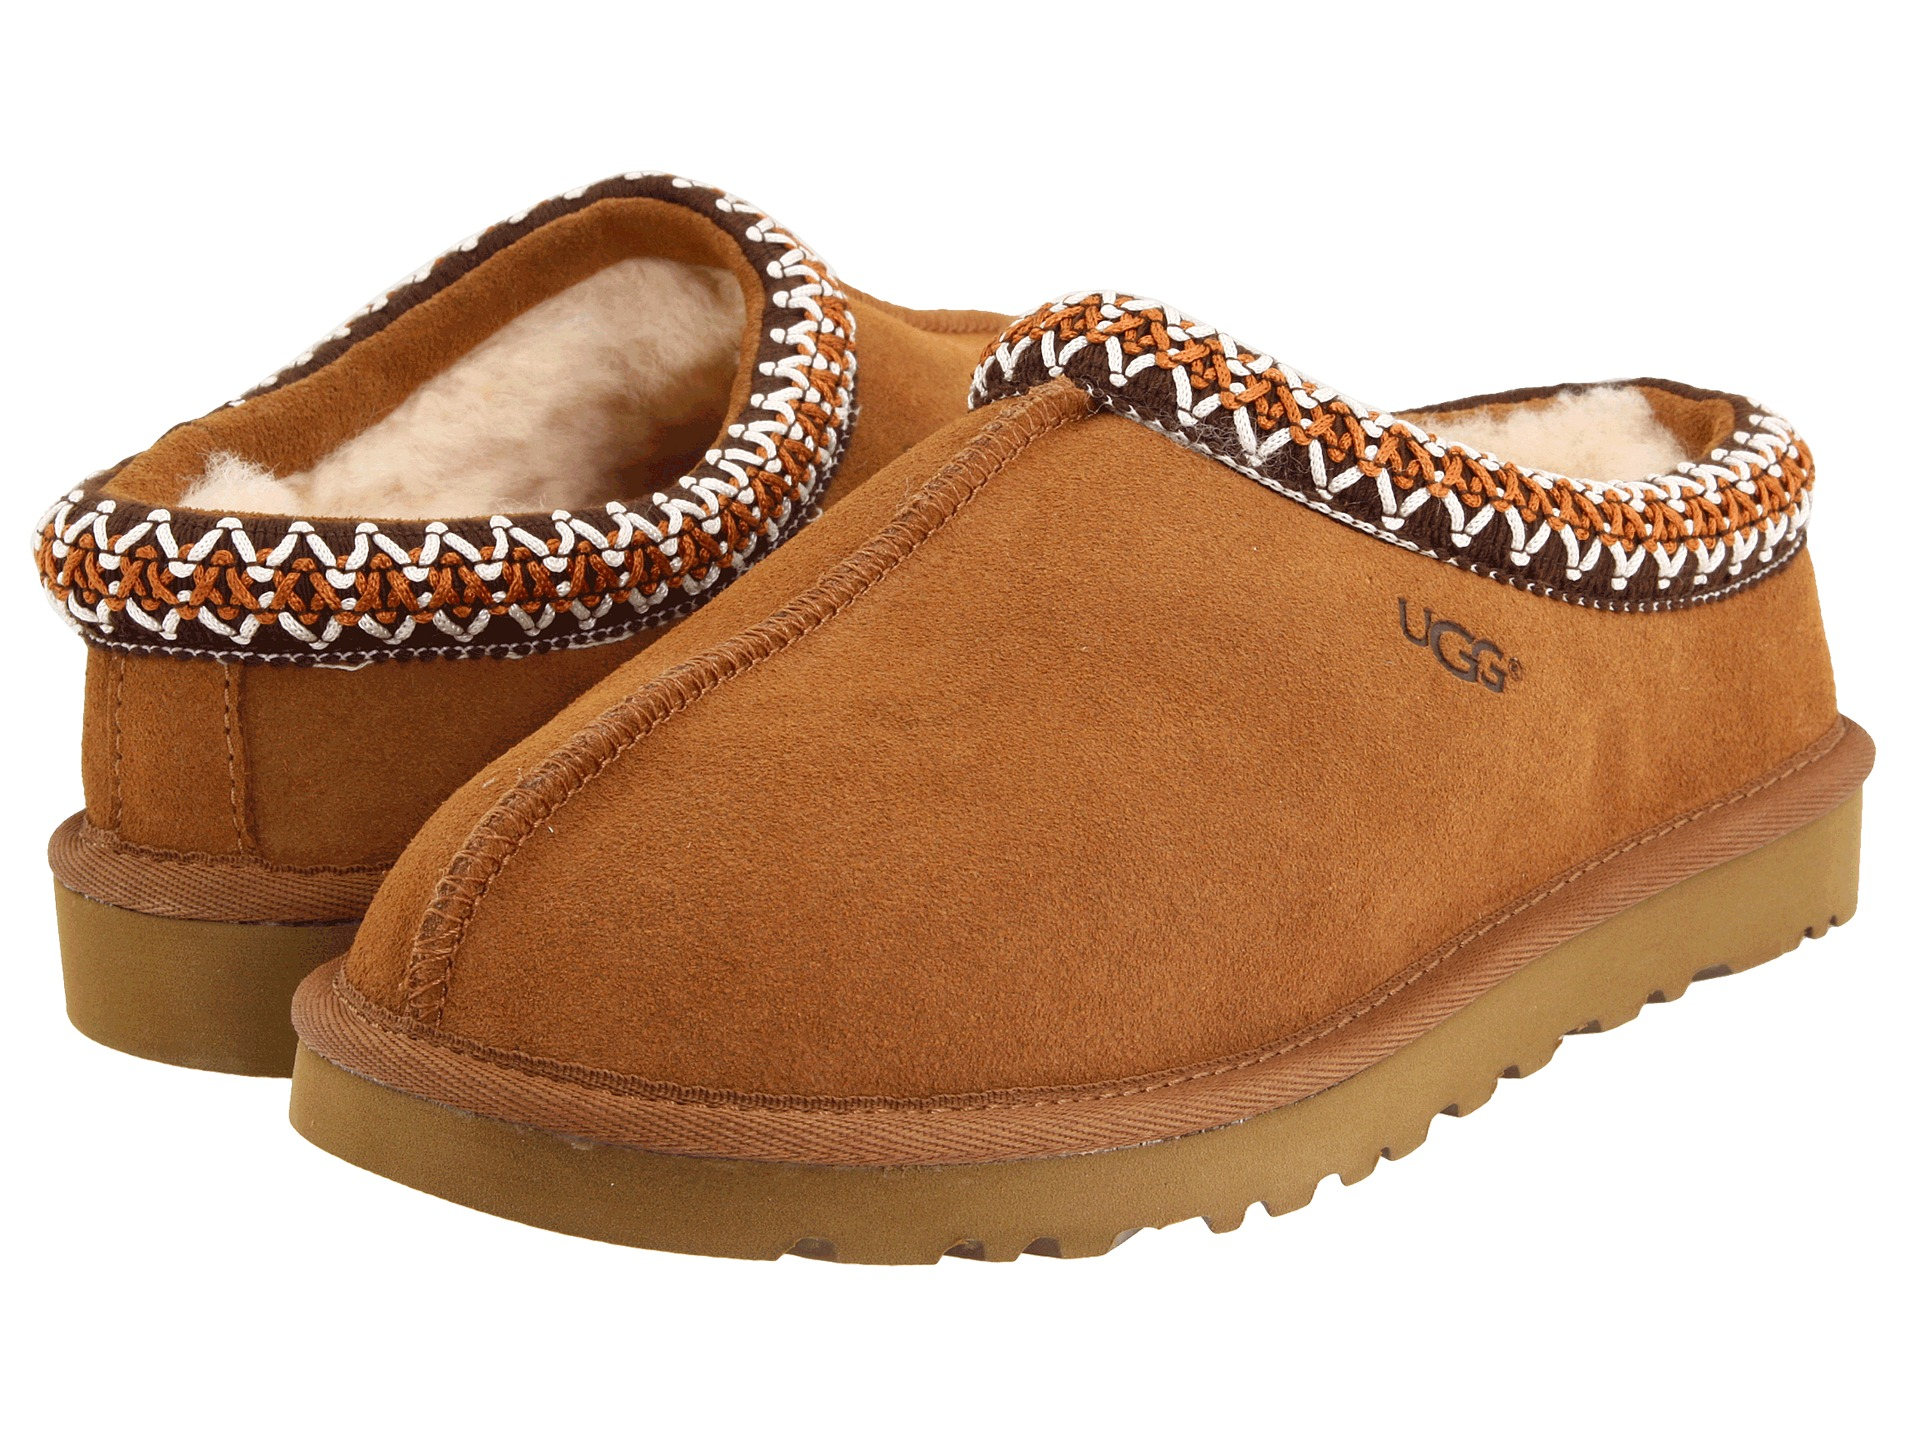 Uggs slipper shoes / Makemytrip coupons